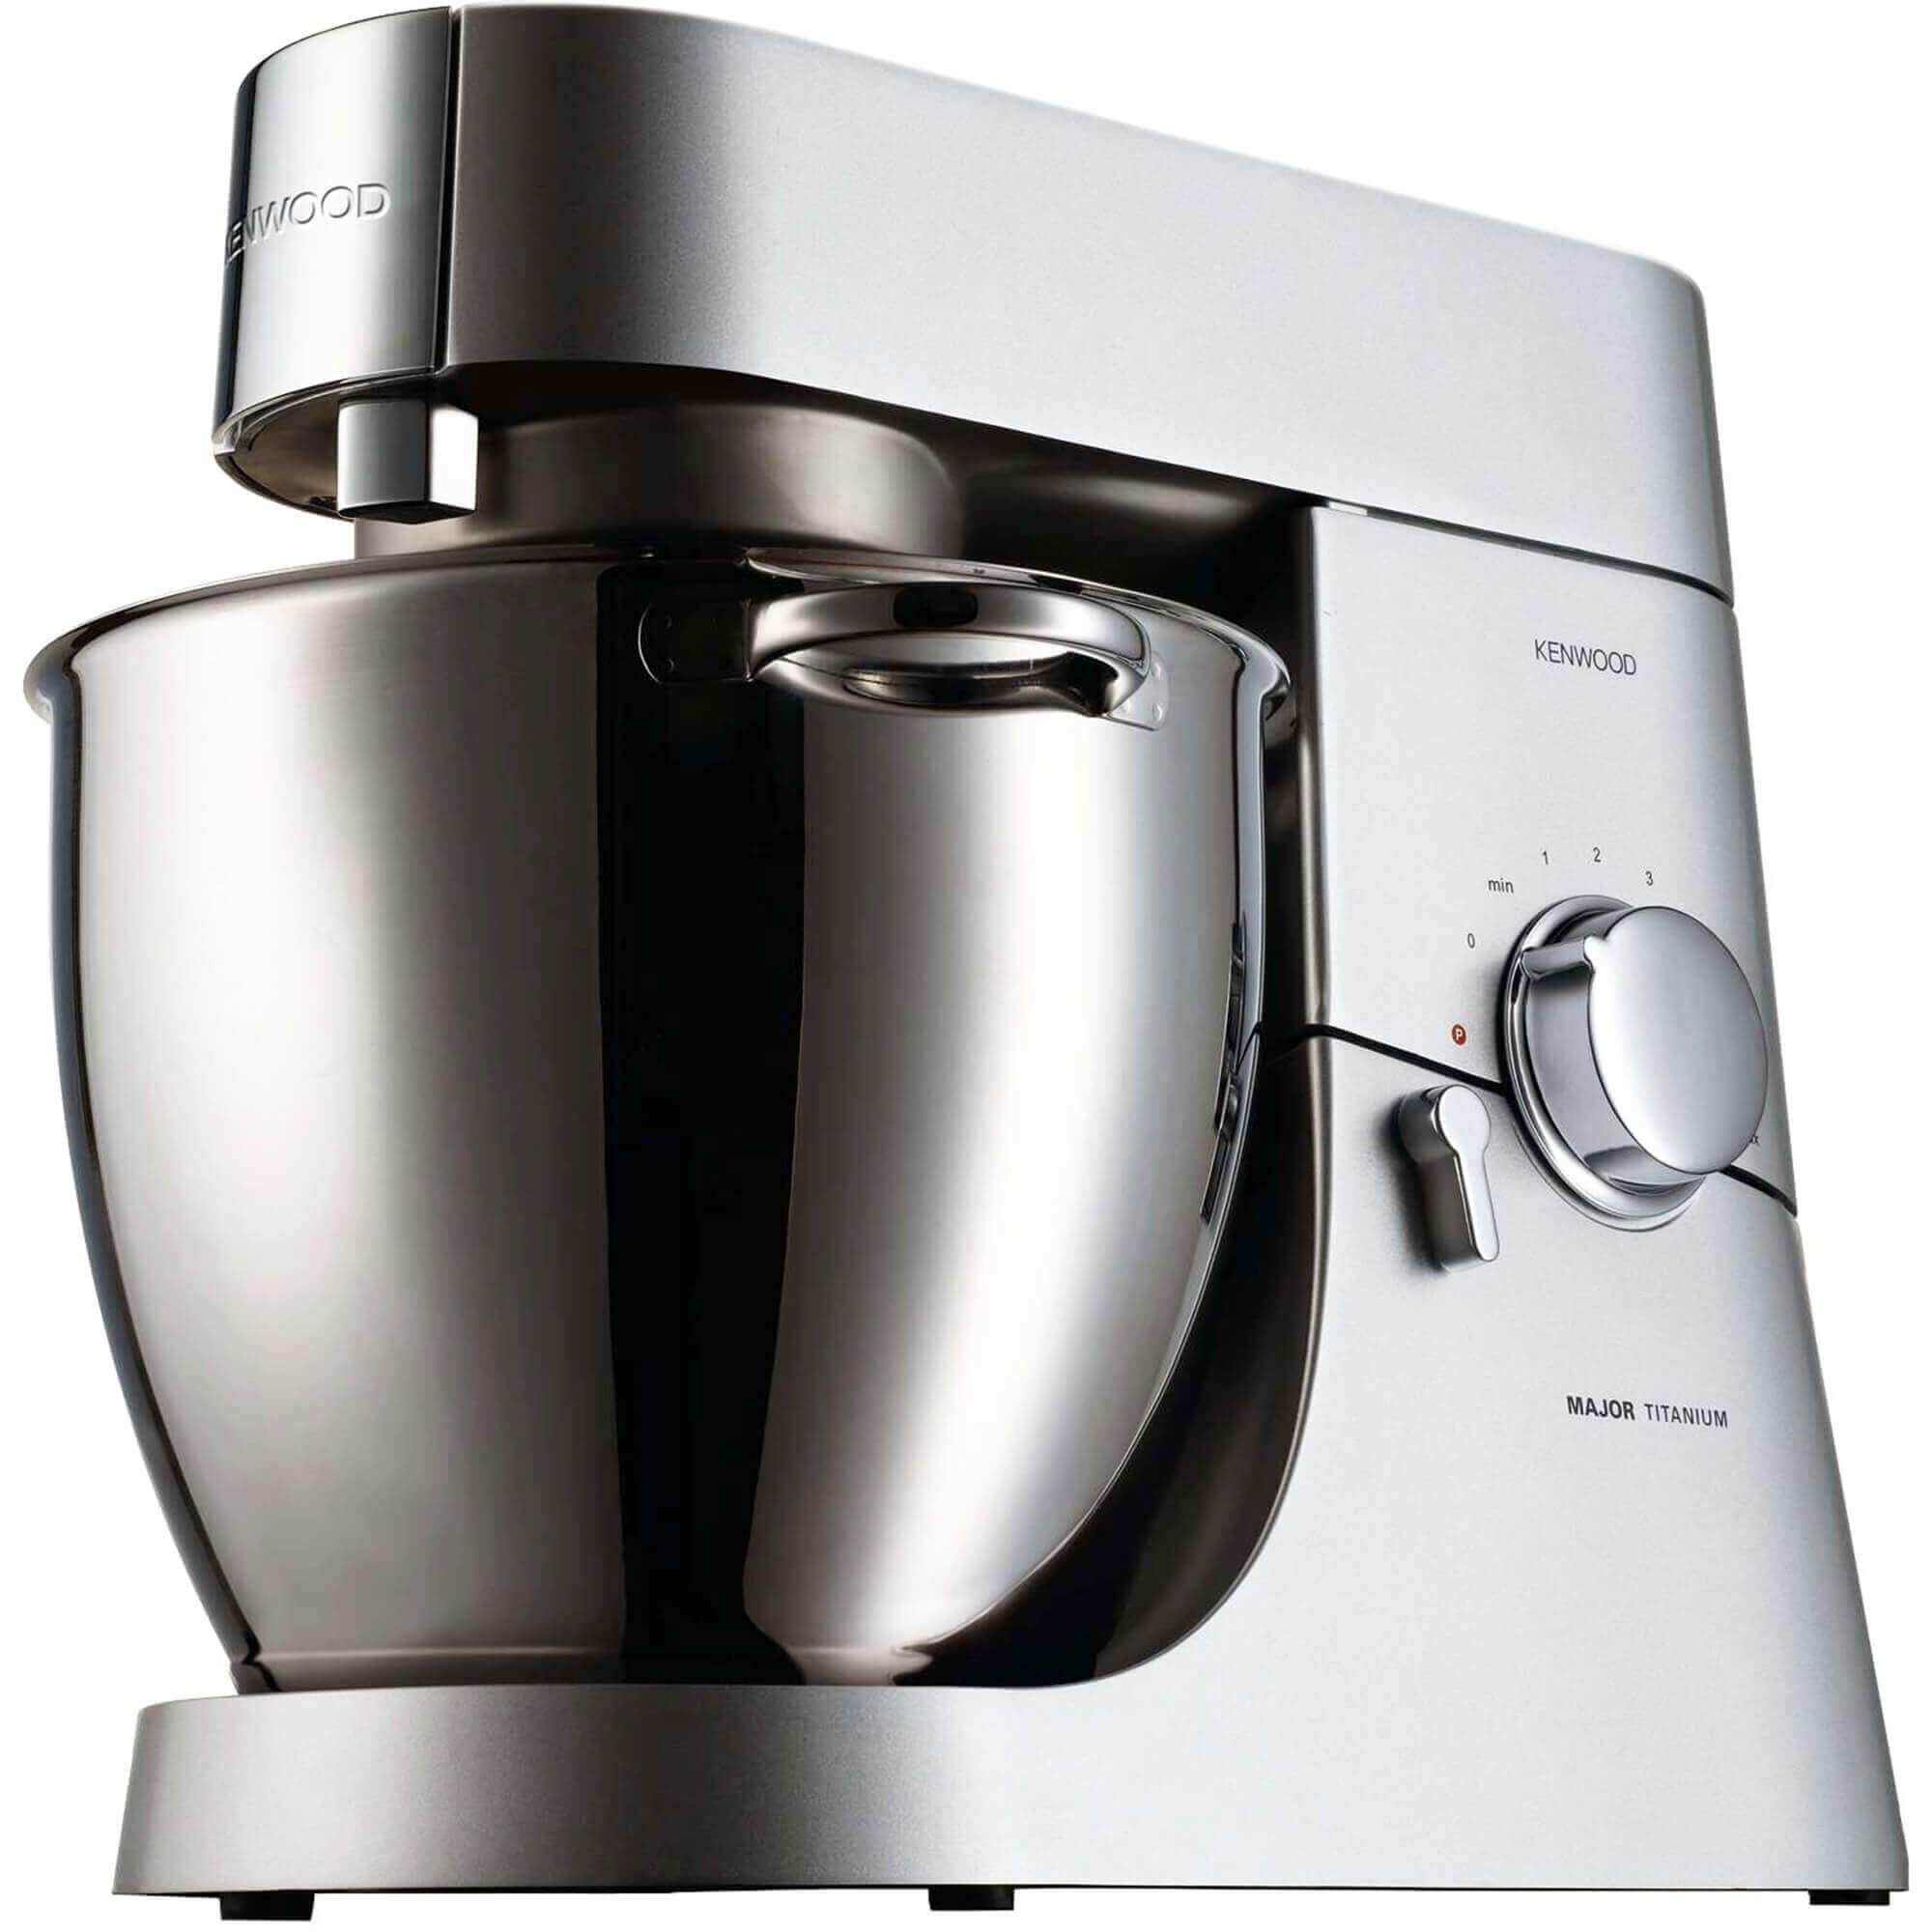 Kenwood KMM020 Major Titanium koekkenmaskine